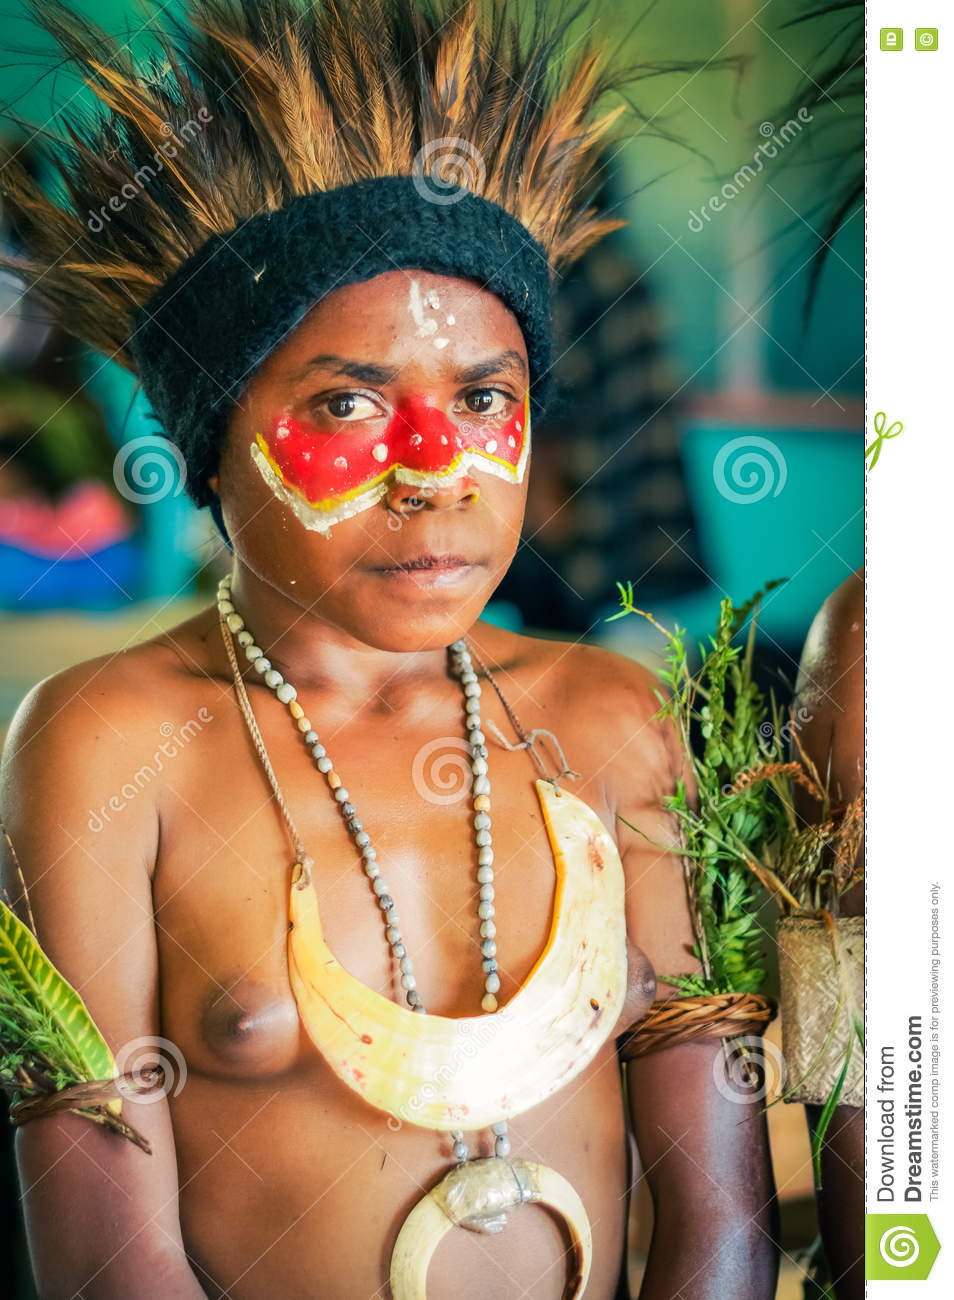 Papua new guinea dating